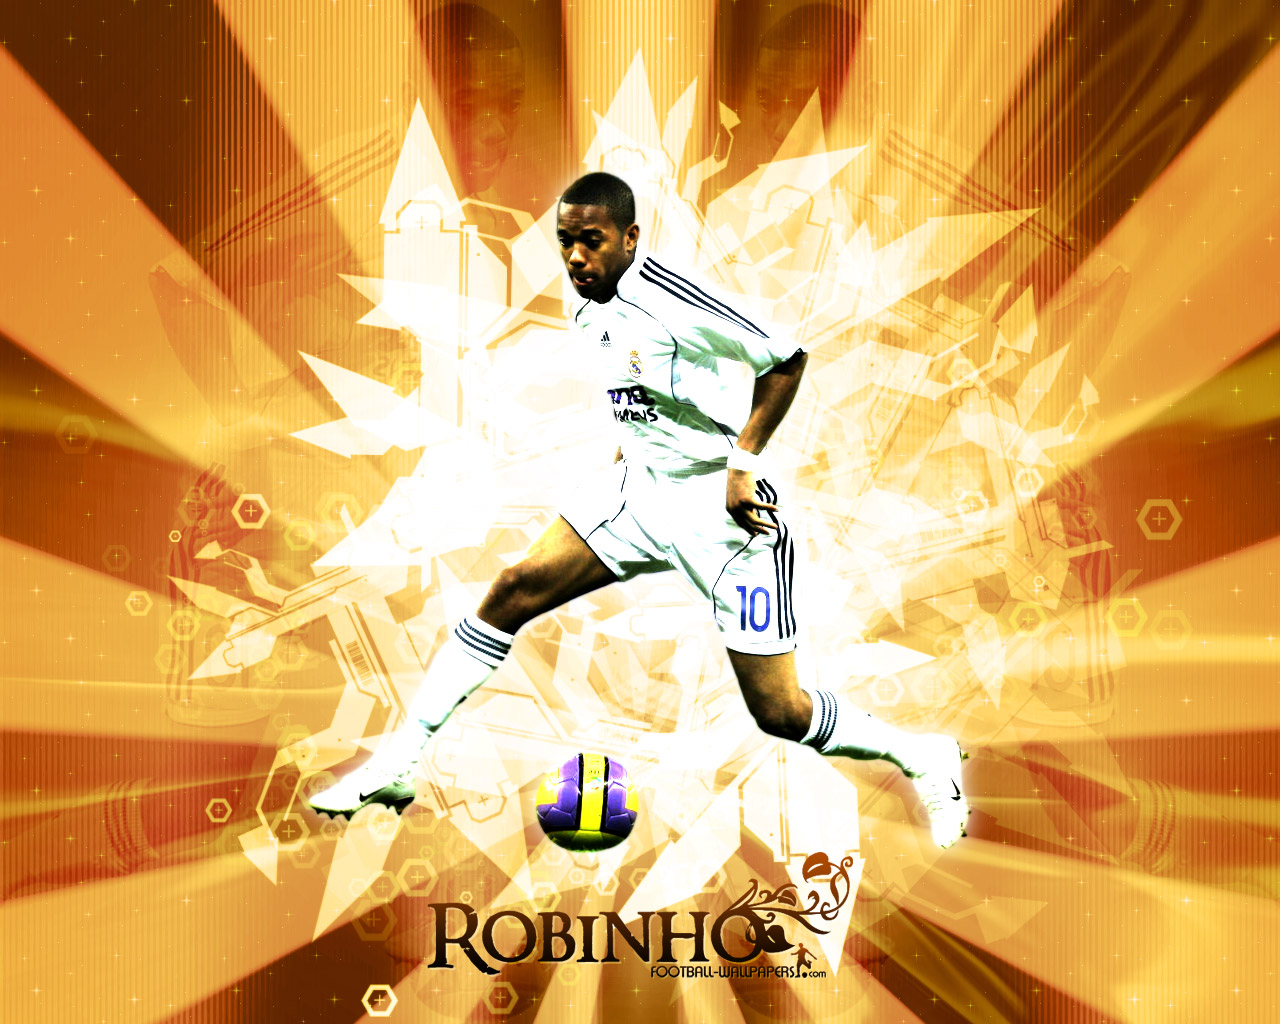 Download Robinho Wallpapers Real Madrid Wallpapers Robinho Wallpapers